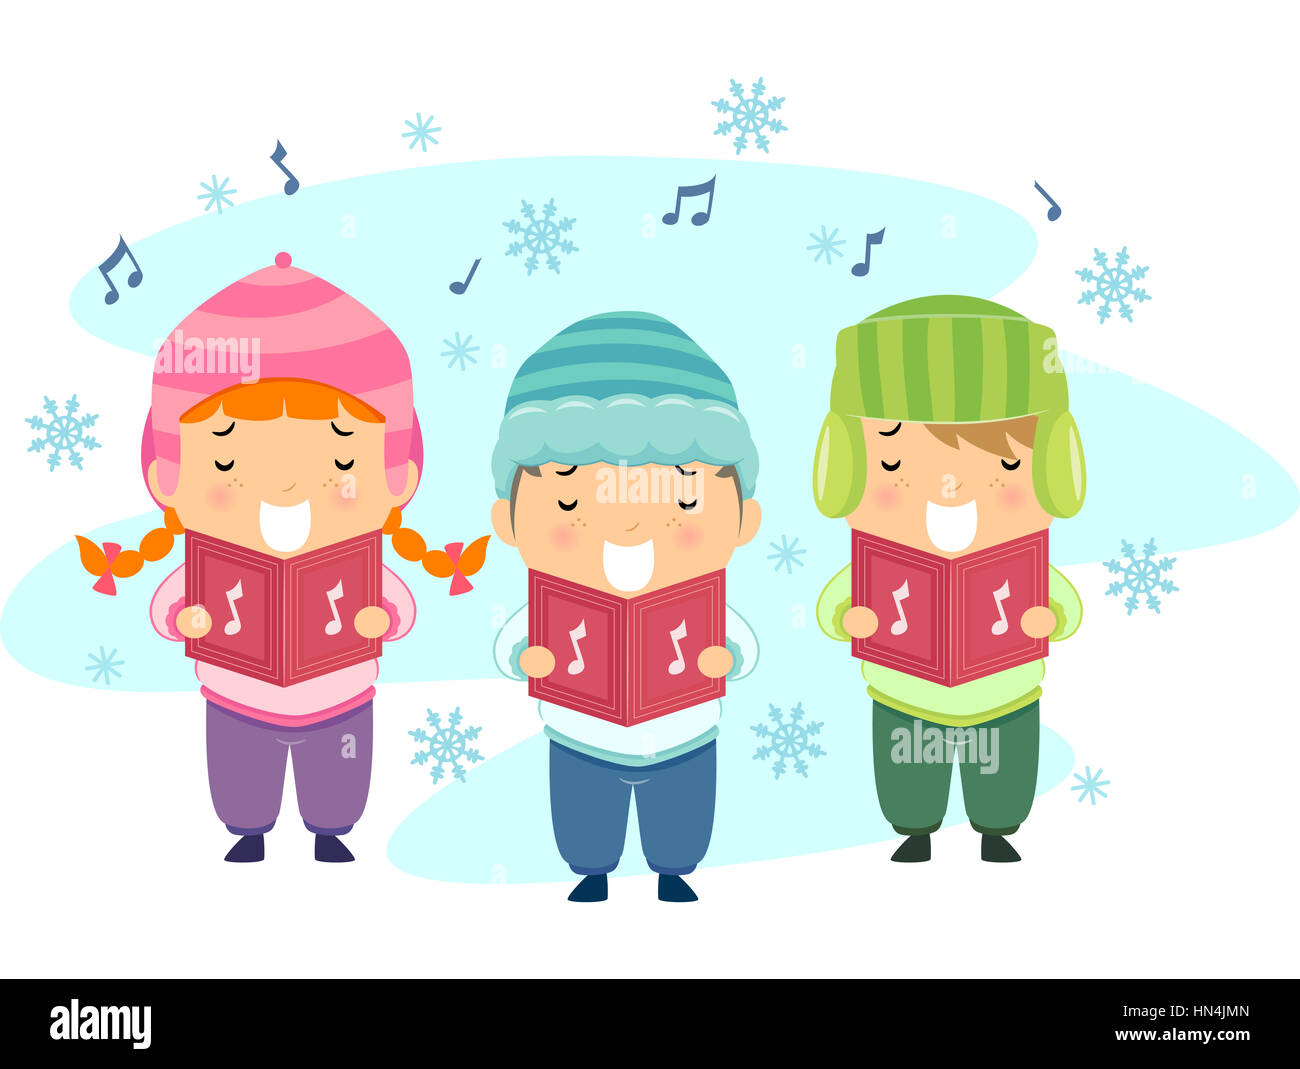 Stickman Illustration Featuring Kids Singing Christmas Carols Stock ...